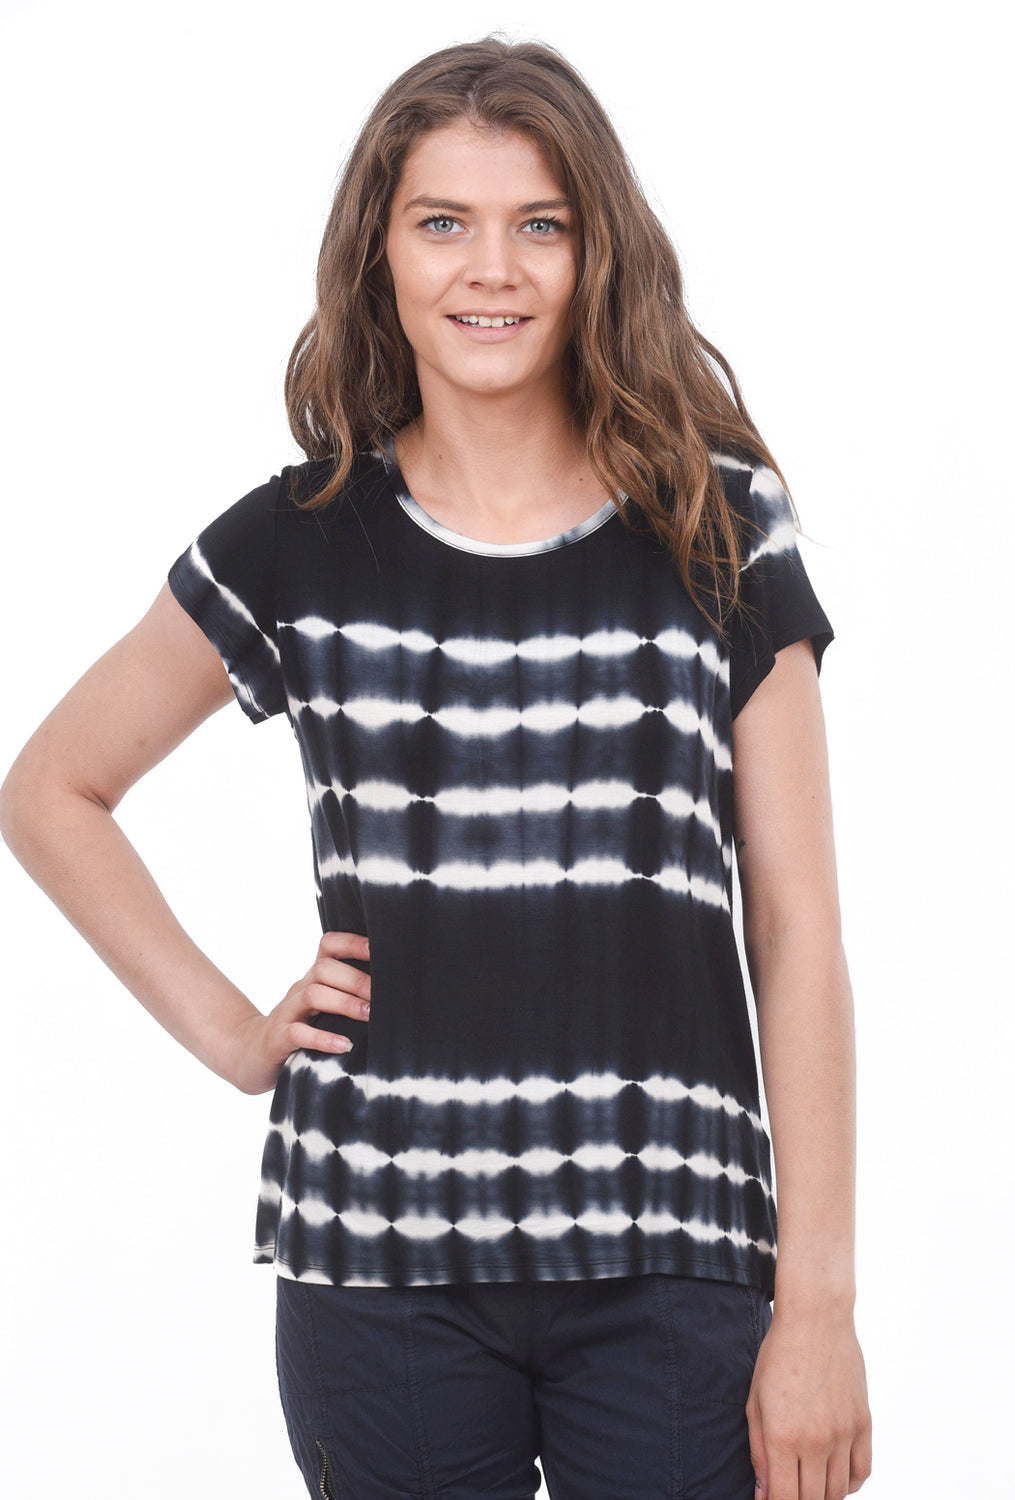 Coin1804 S/S Tie-Dye Button-Back Tee, Black/White